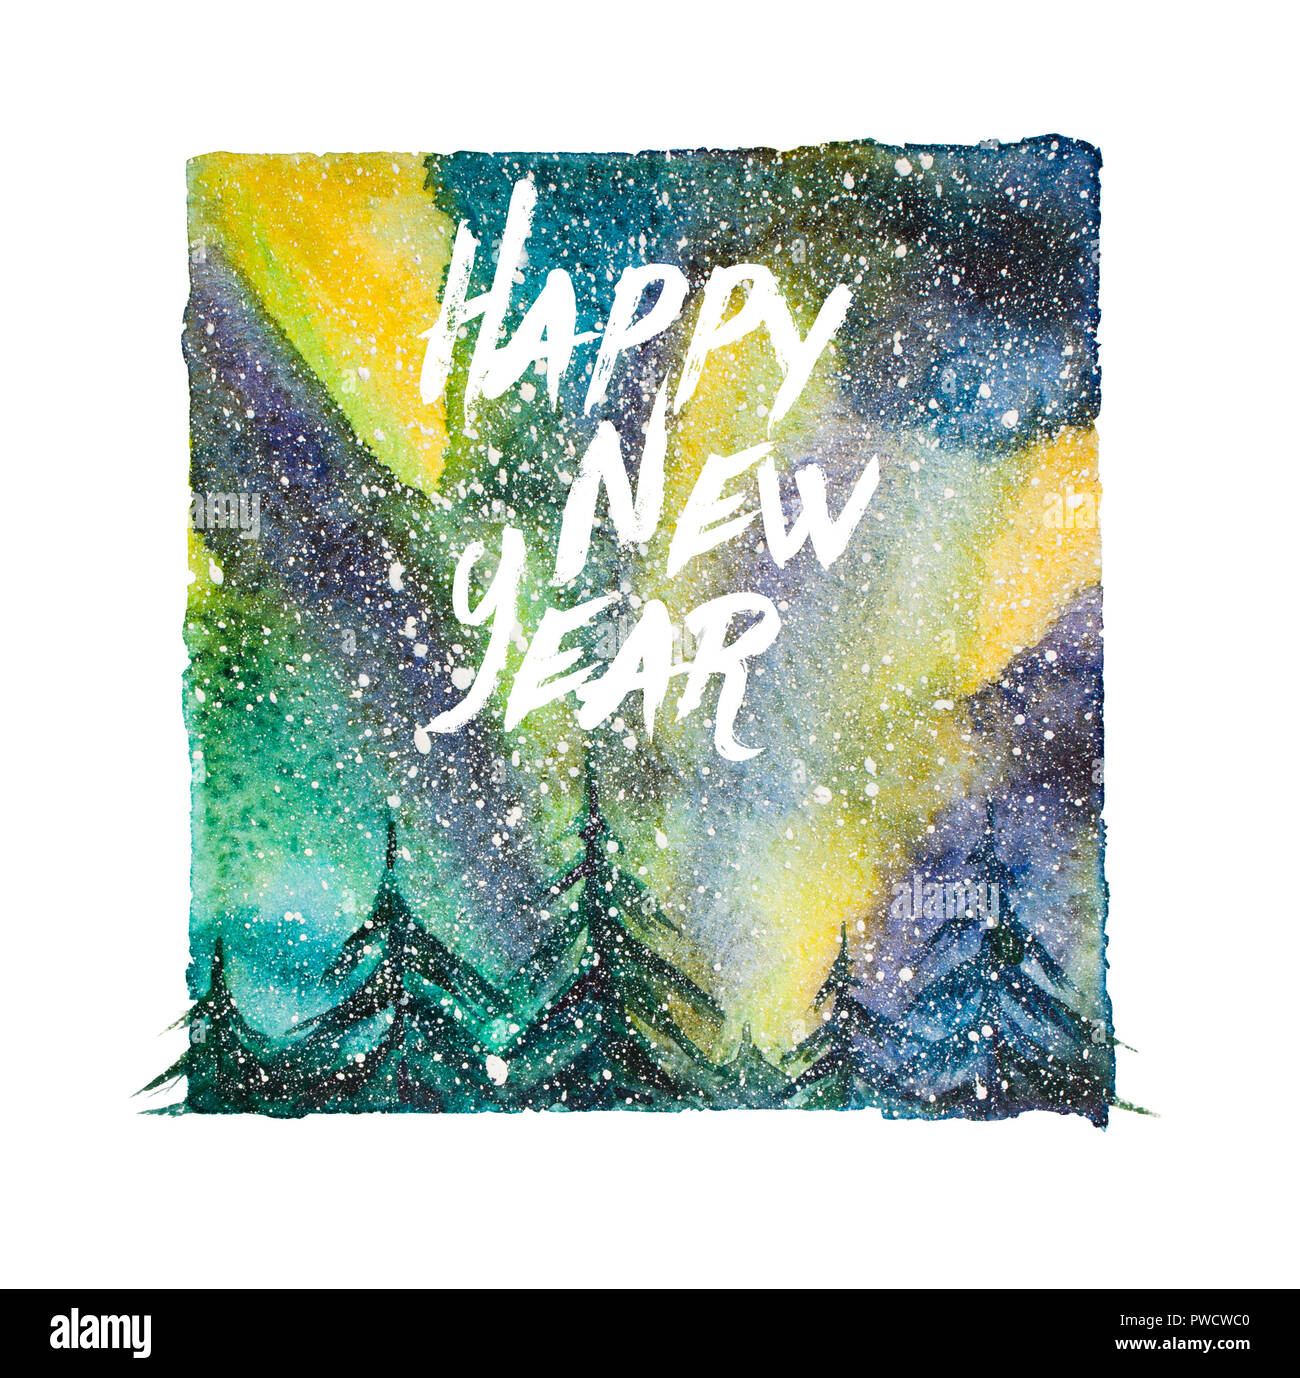 Watercolor northern lights illustration with artistic brushy happy new year lettering - Stock Image